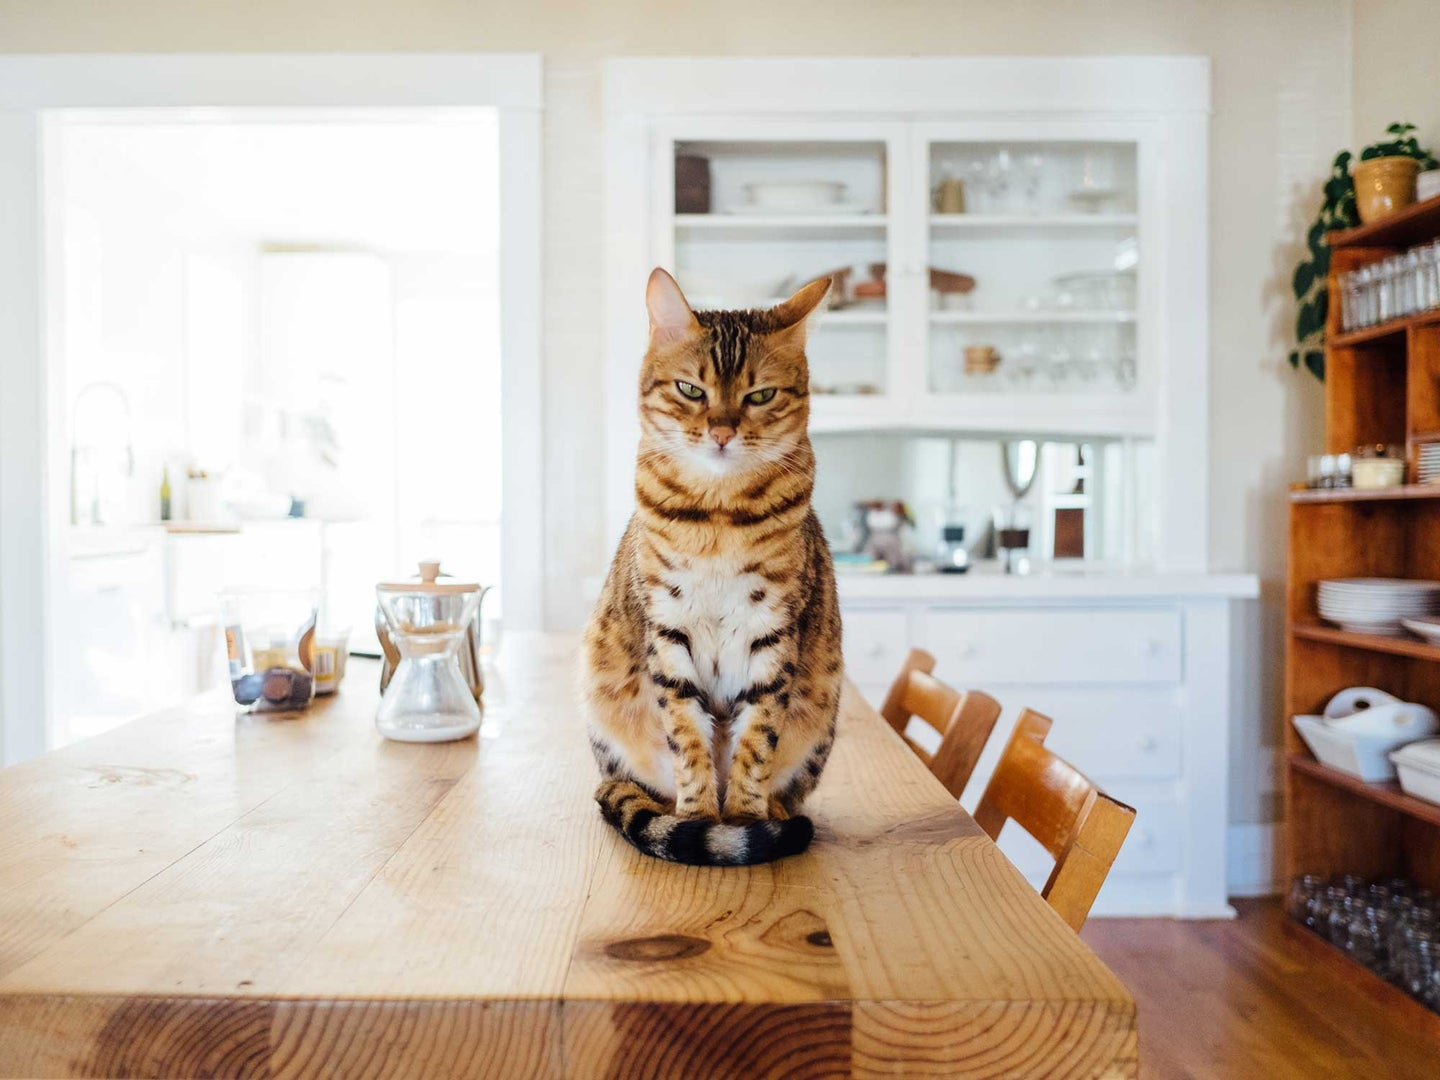 Orange cat sitting on a dining table